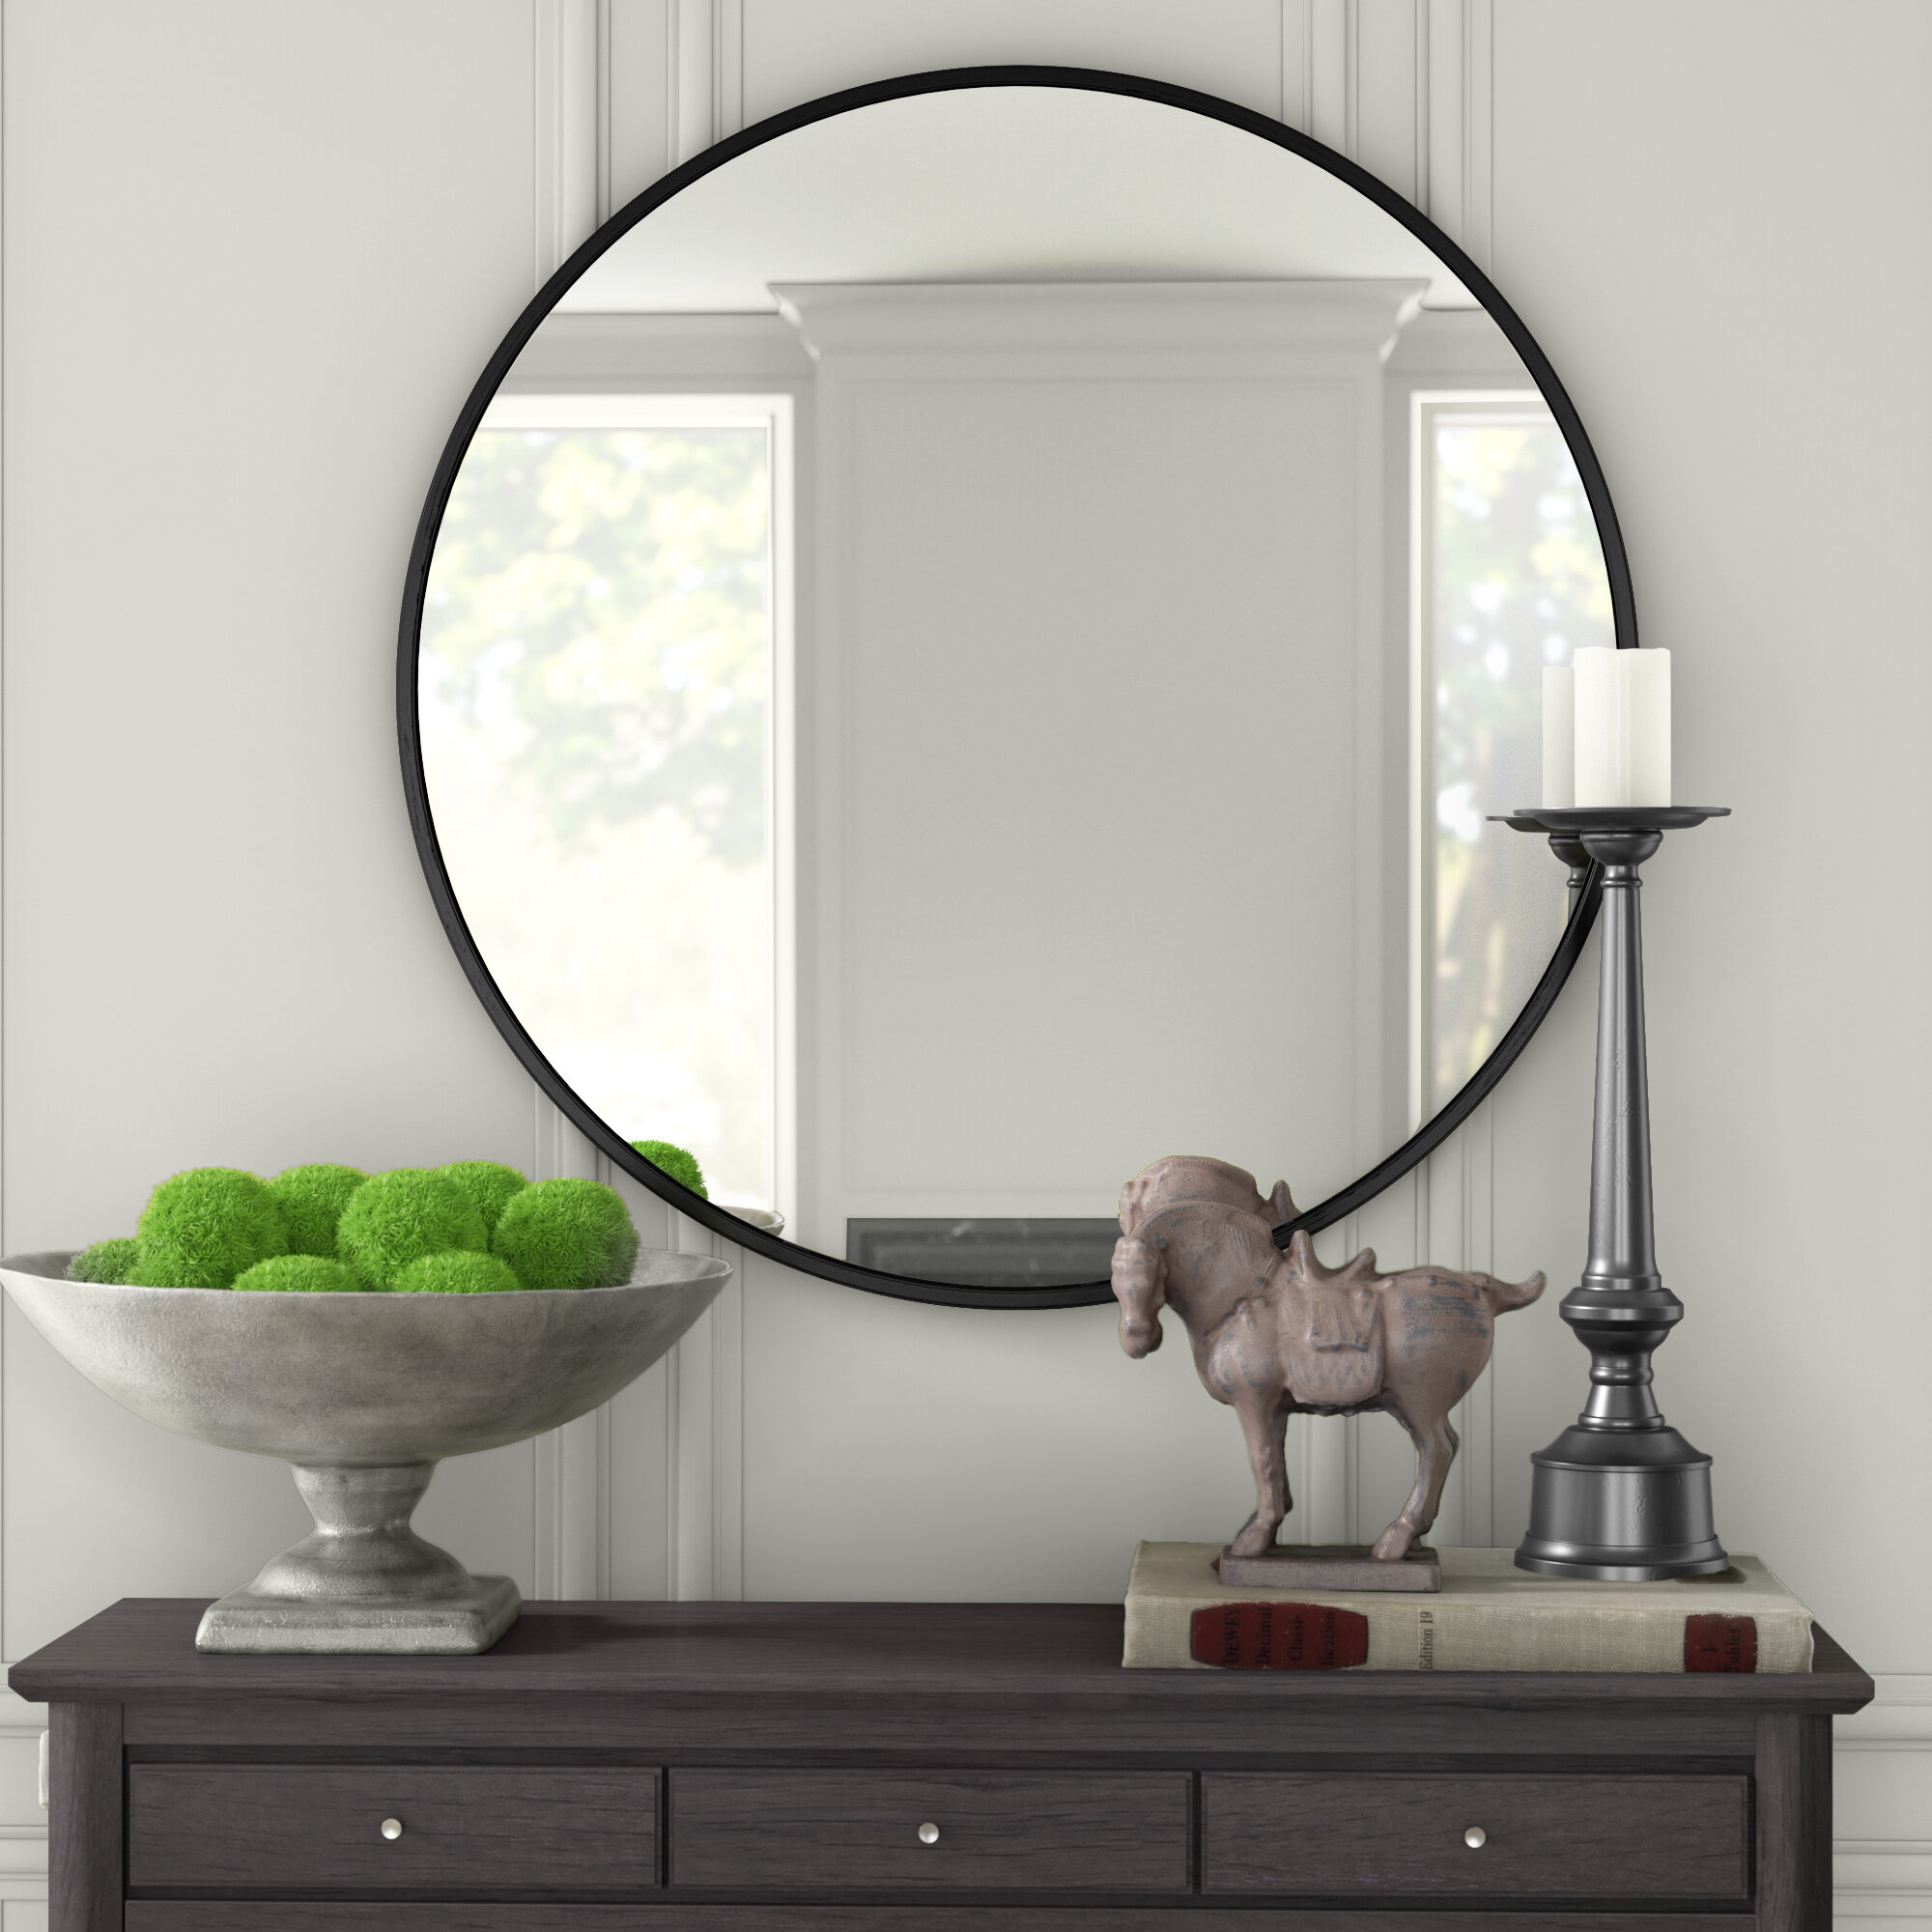 Needville Modern & Contemporary Accent Mirror With Needville Modern & Contemporary Accent Mirrors (View 8 of 30)